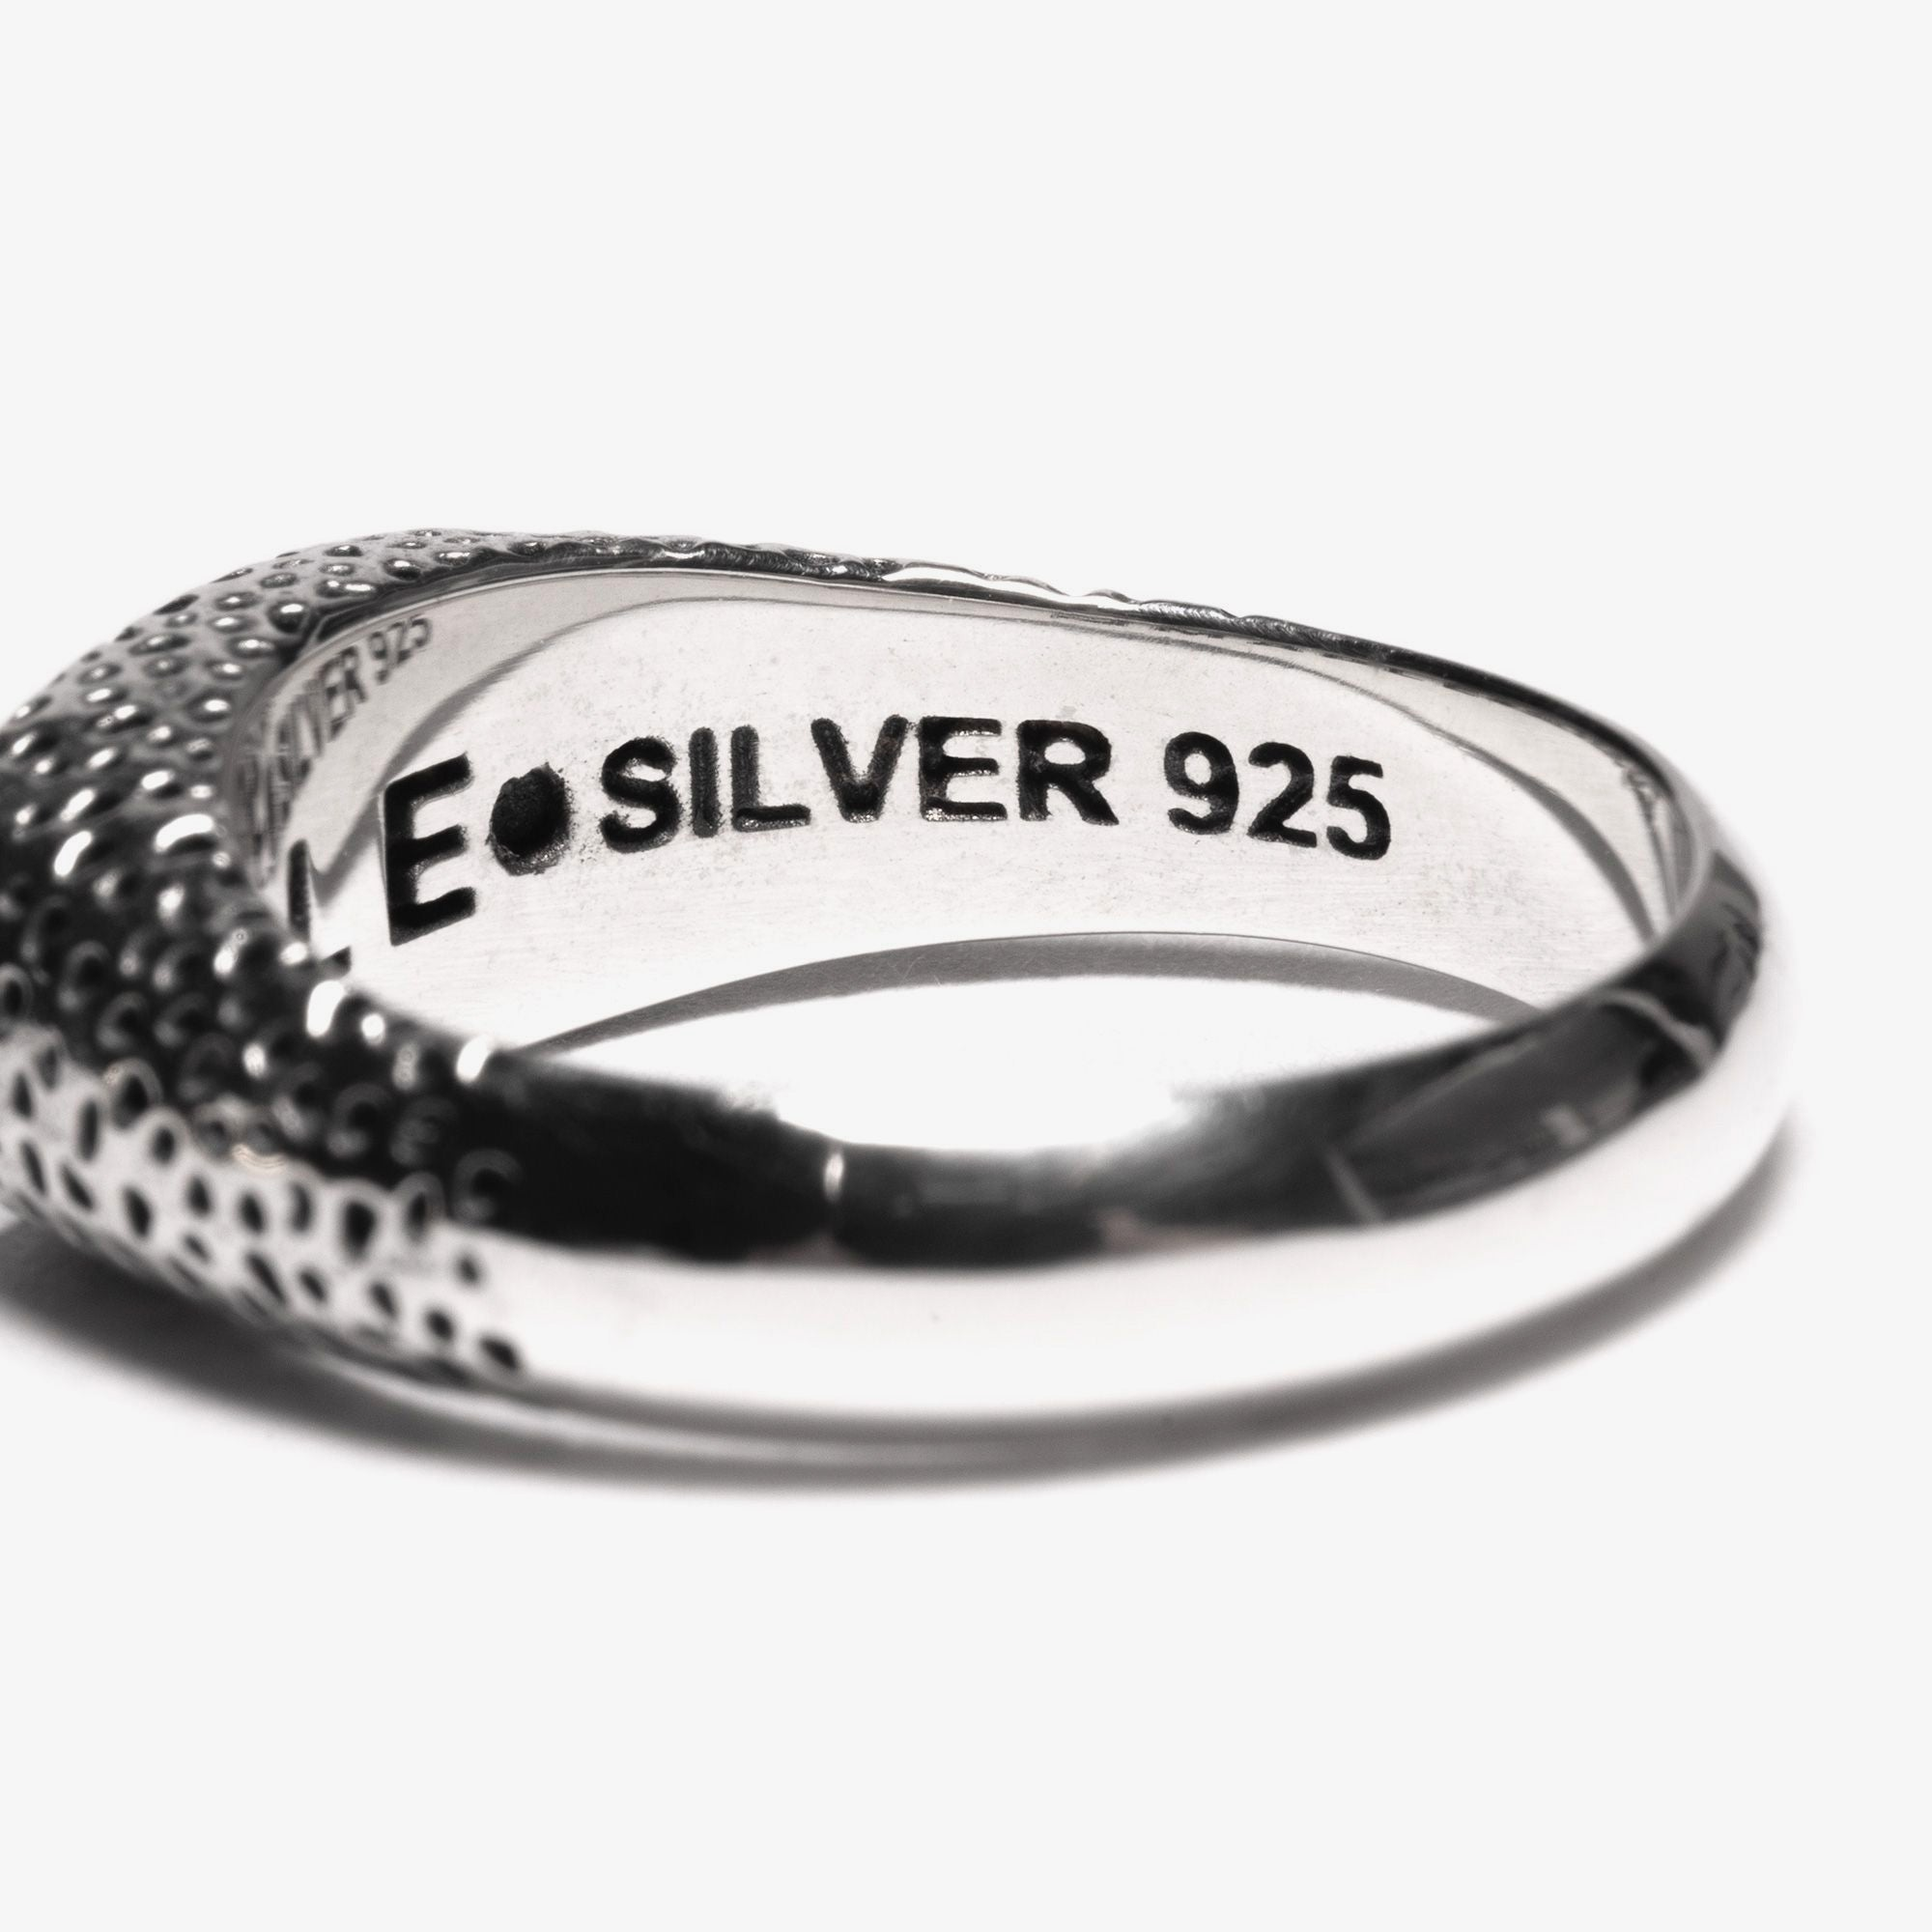 Maple Nugget Ring Slim - Silver 925 2